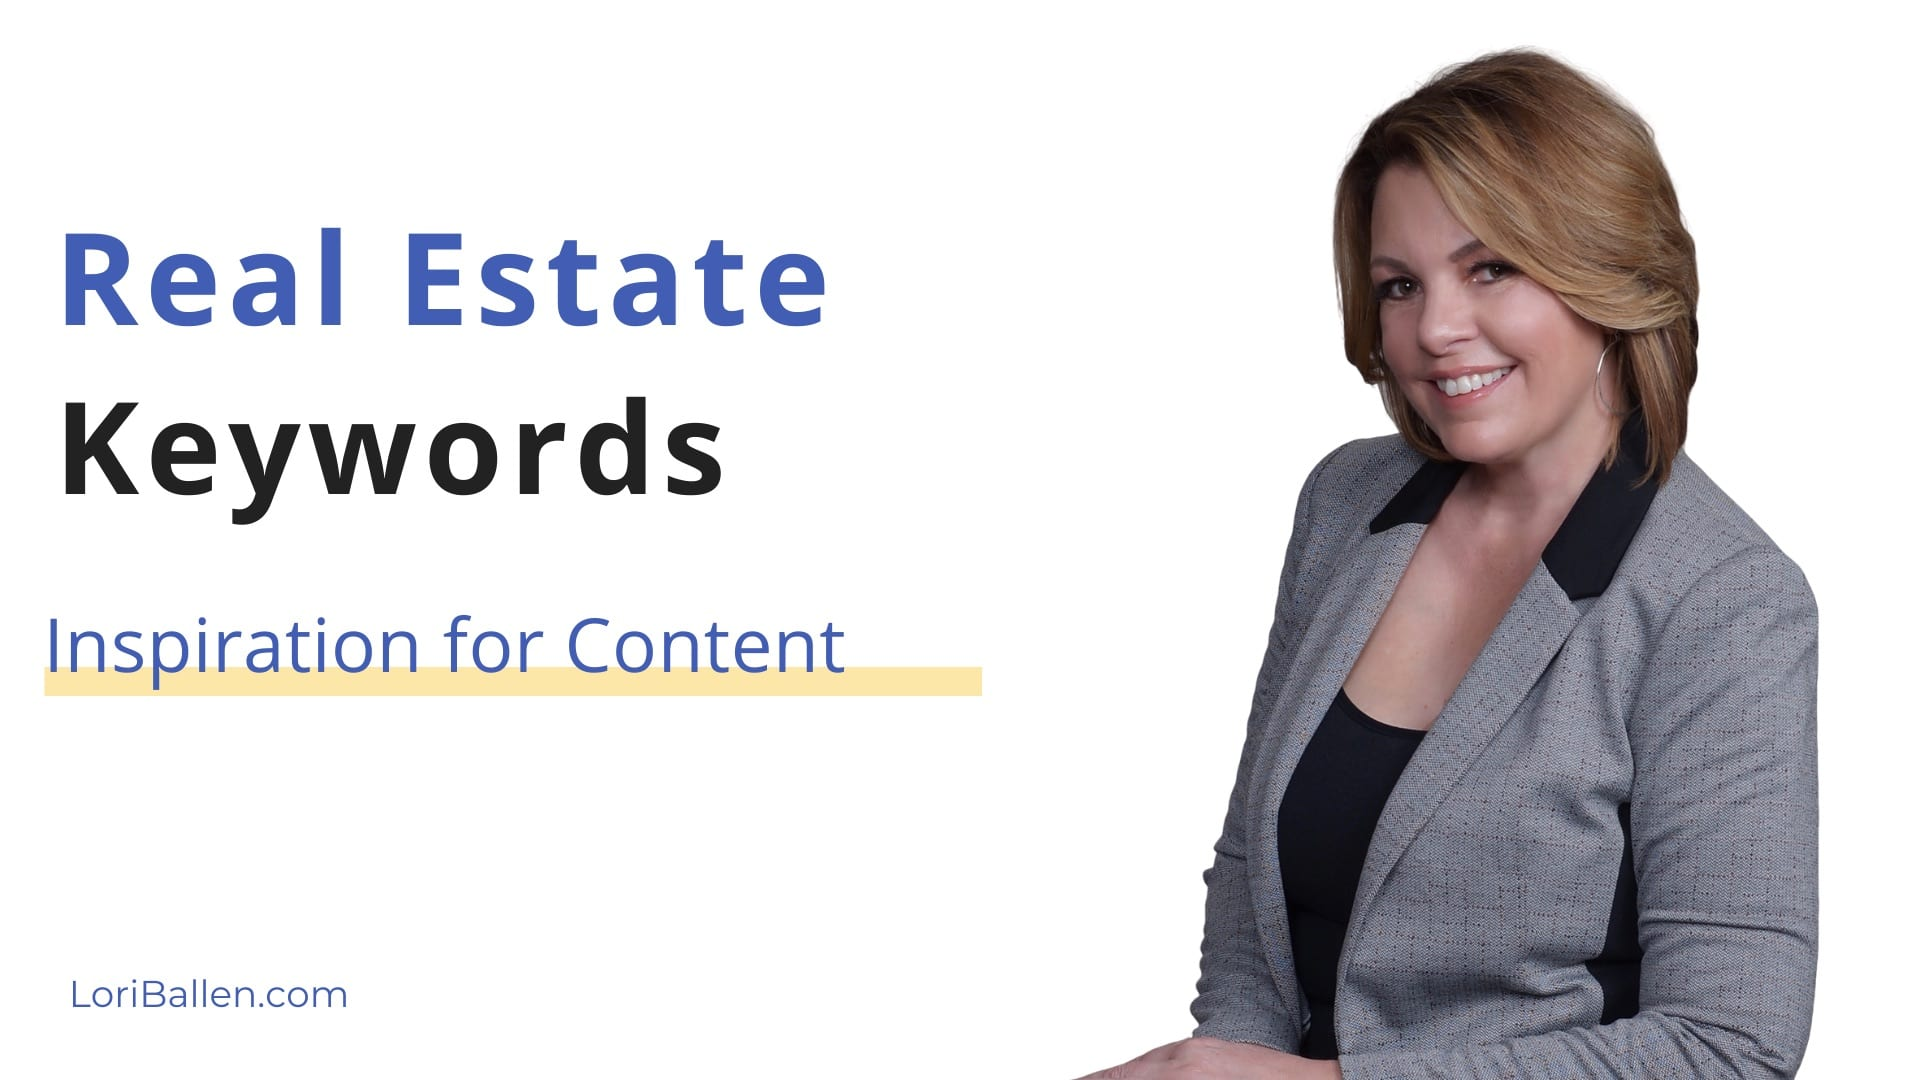 Do you know the power of real estate keywords for lead generation? If you are a real estate agent, content marketing is what drives the consumer today. Consumers want a product and valuable information. Other than IDX listings, you must be an expert in the real estate industry.